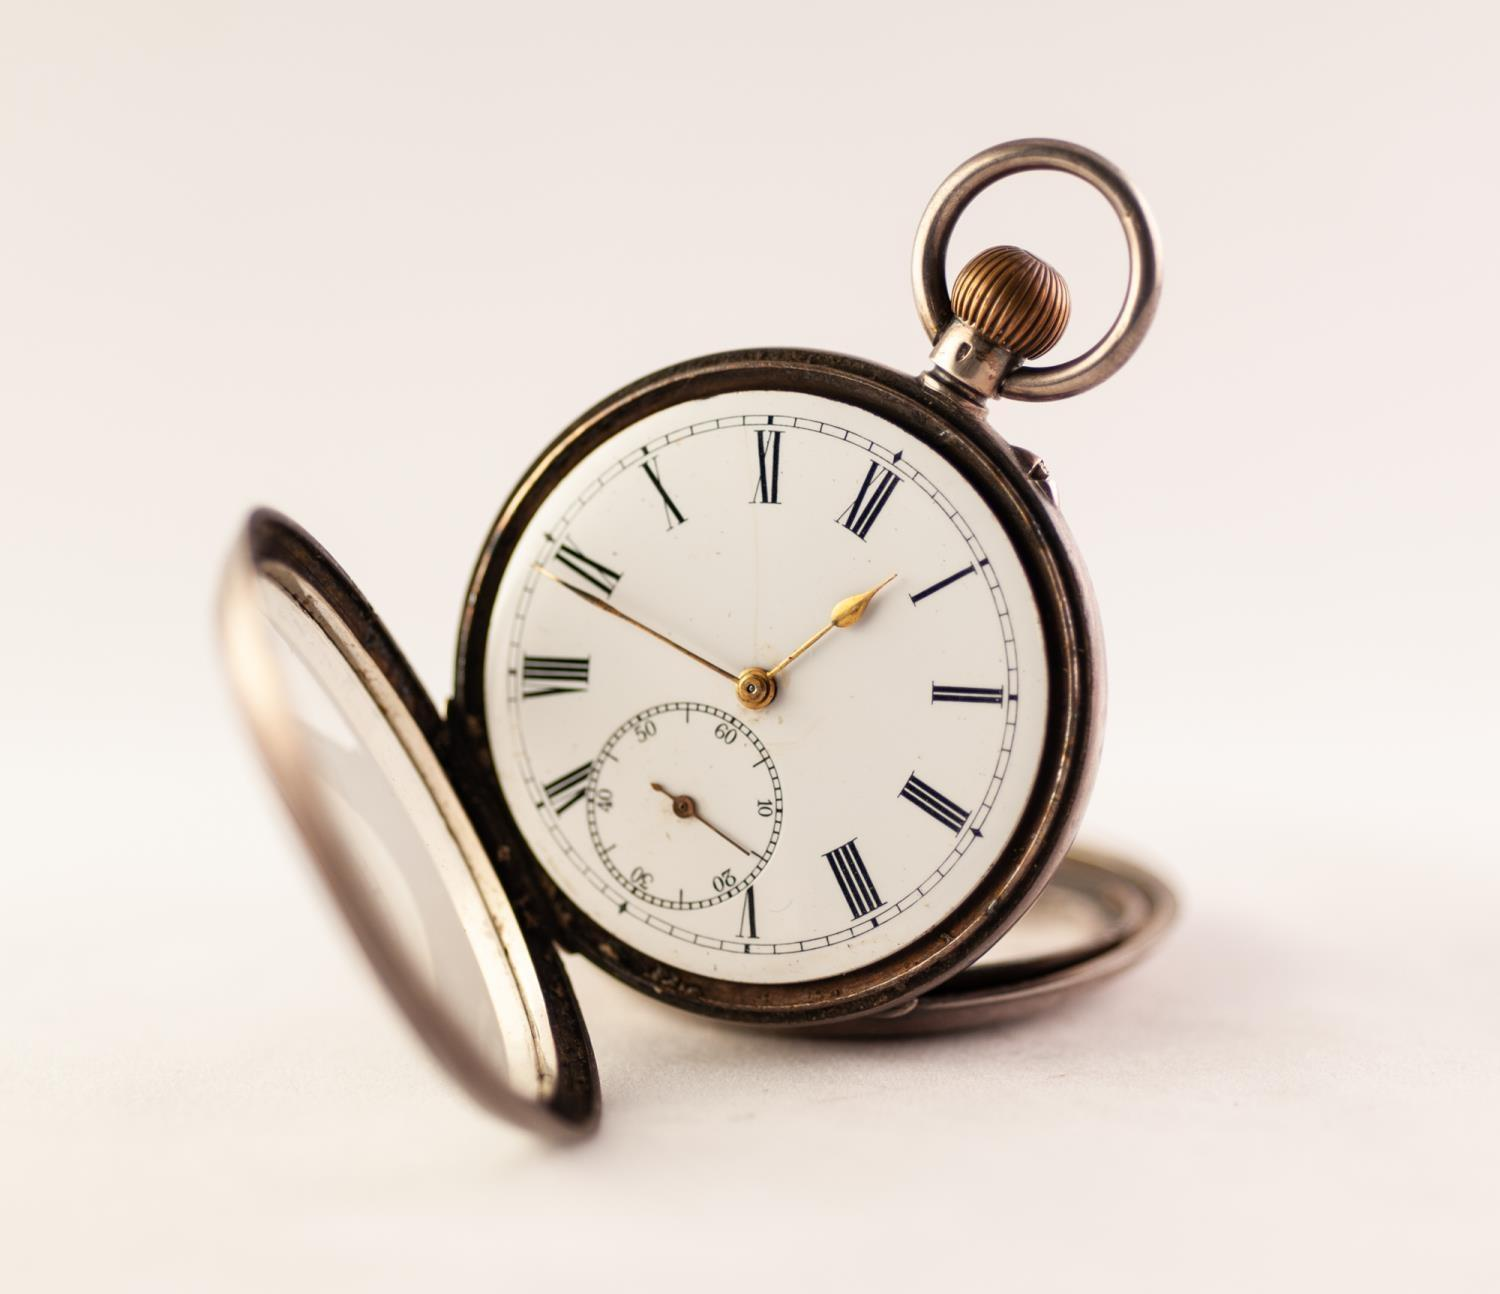 Lot 32 - SILVER OPEN FACE POCKET WATCH White enamel dial with Roman numeral hour markers, subsidiary